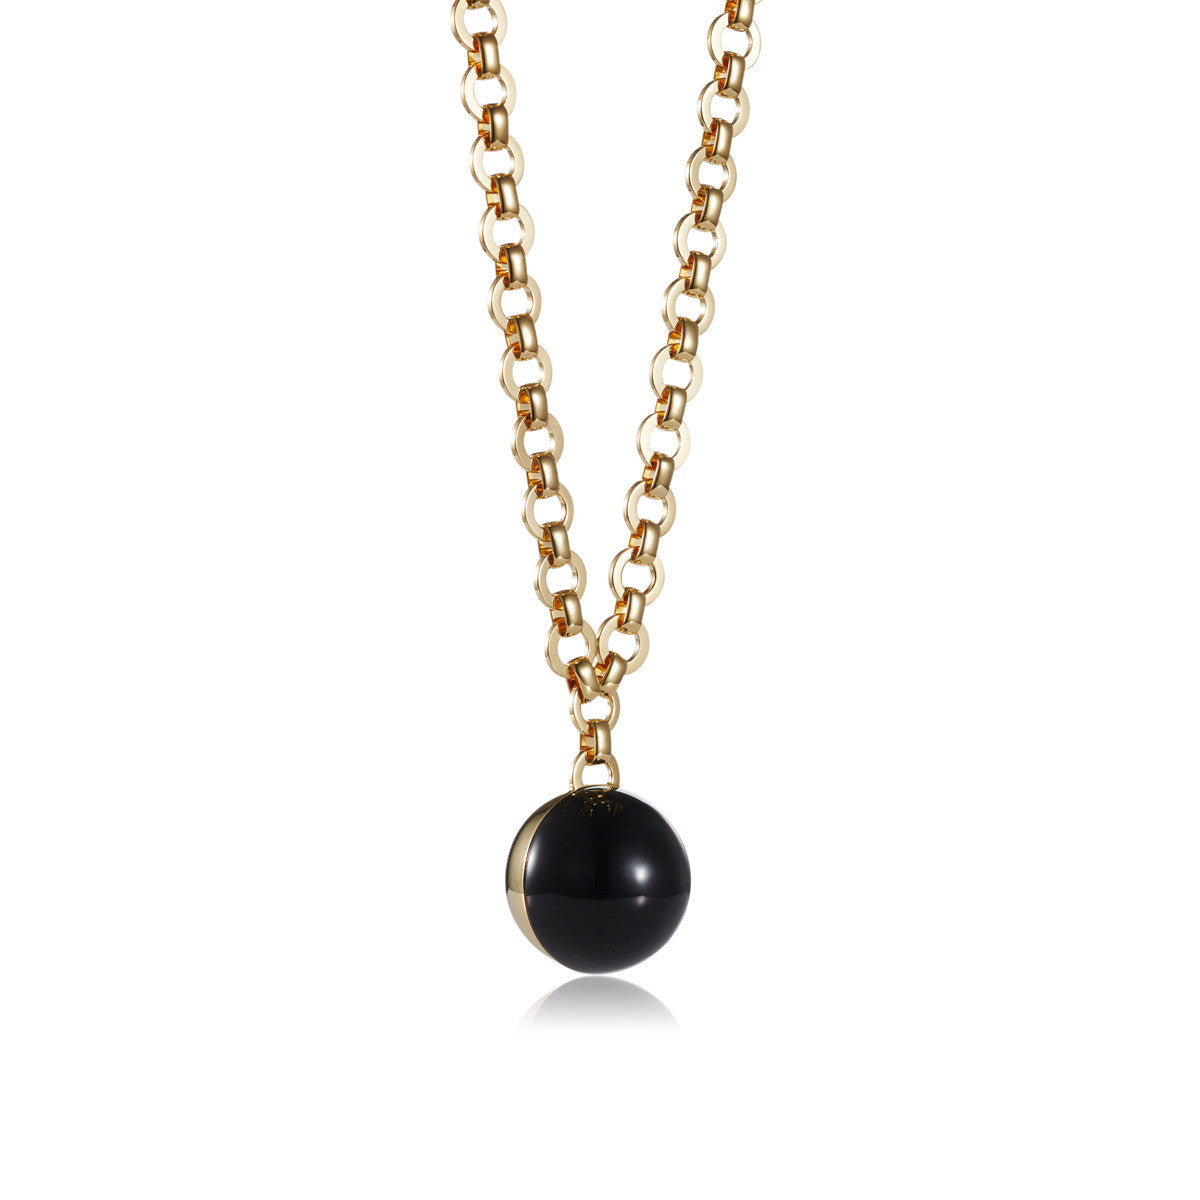 Solid brass, 18K gold plated Sphera pendant necklace with solid brass link chain and a single stunning natural black onyx sphere - detail